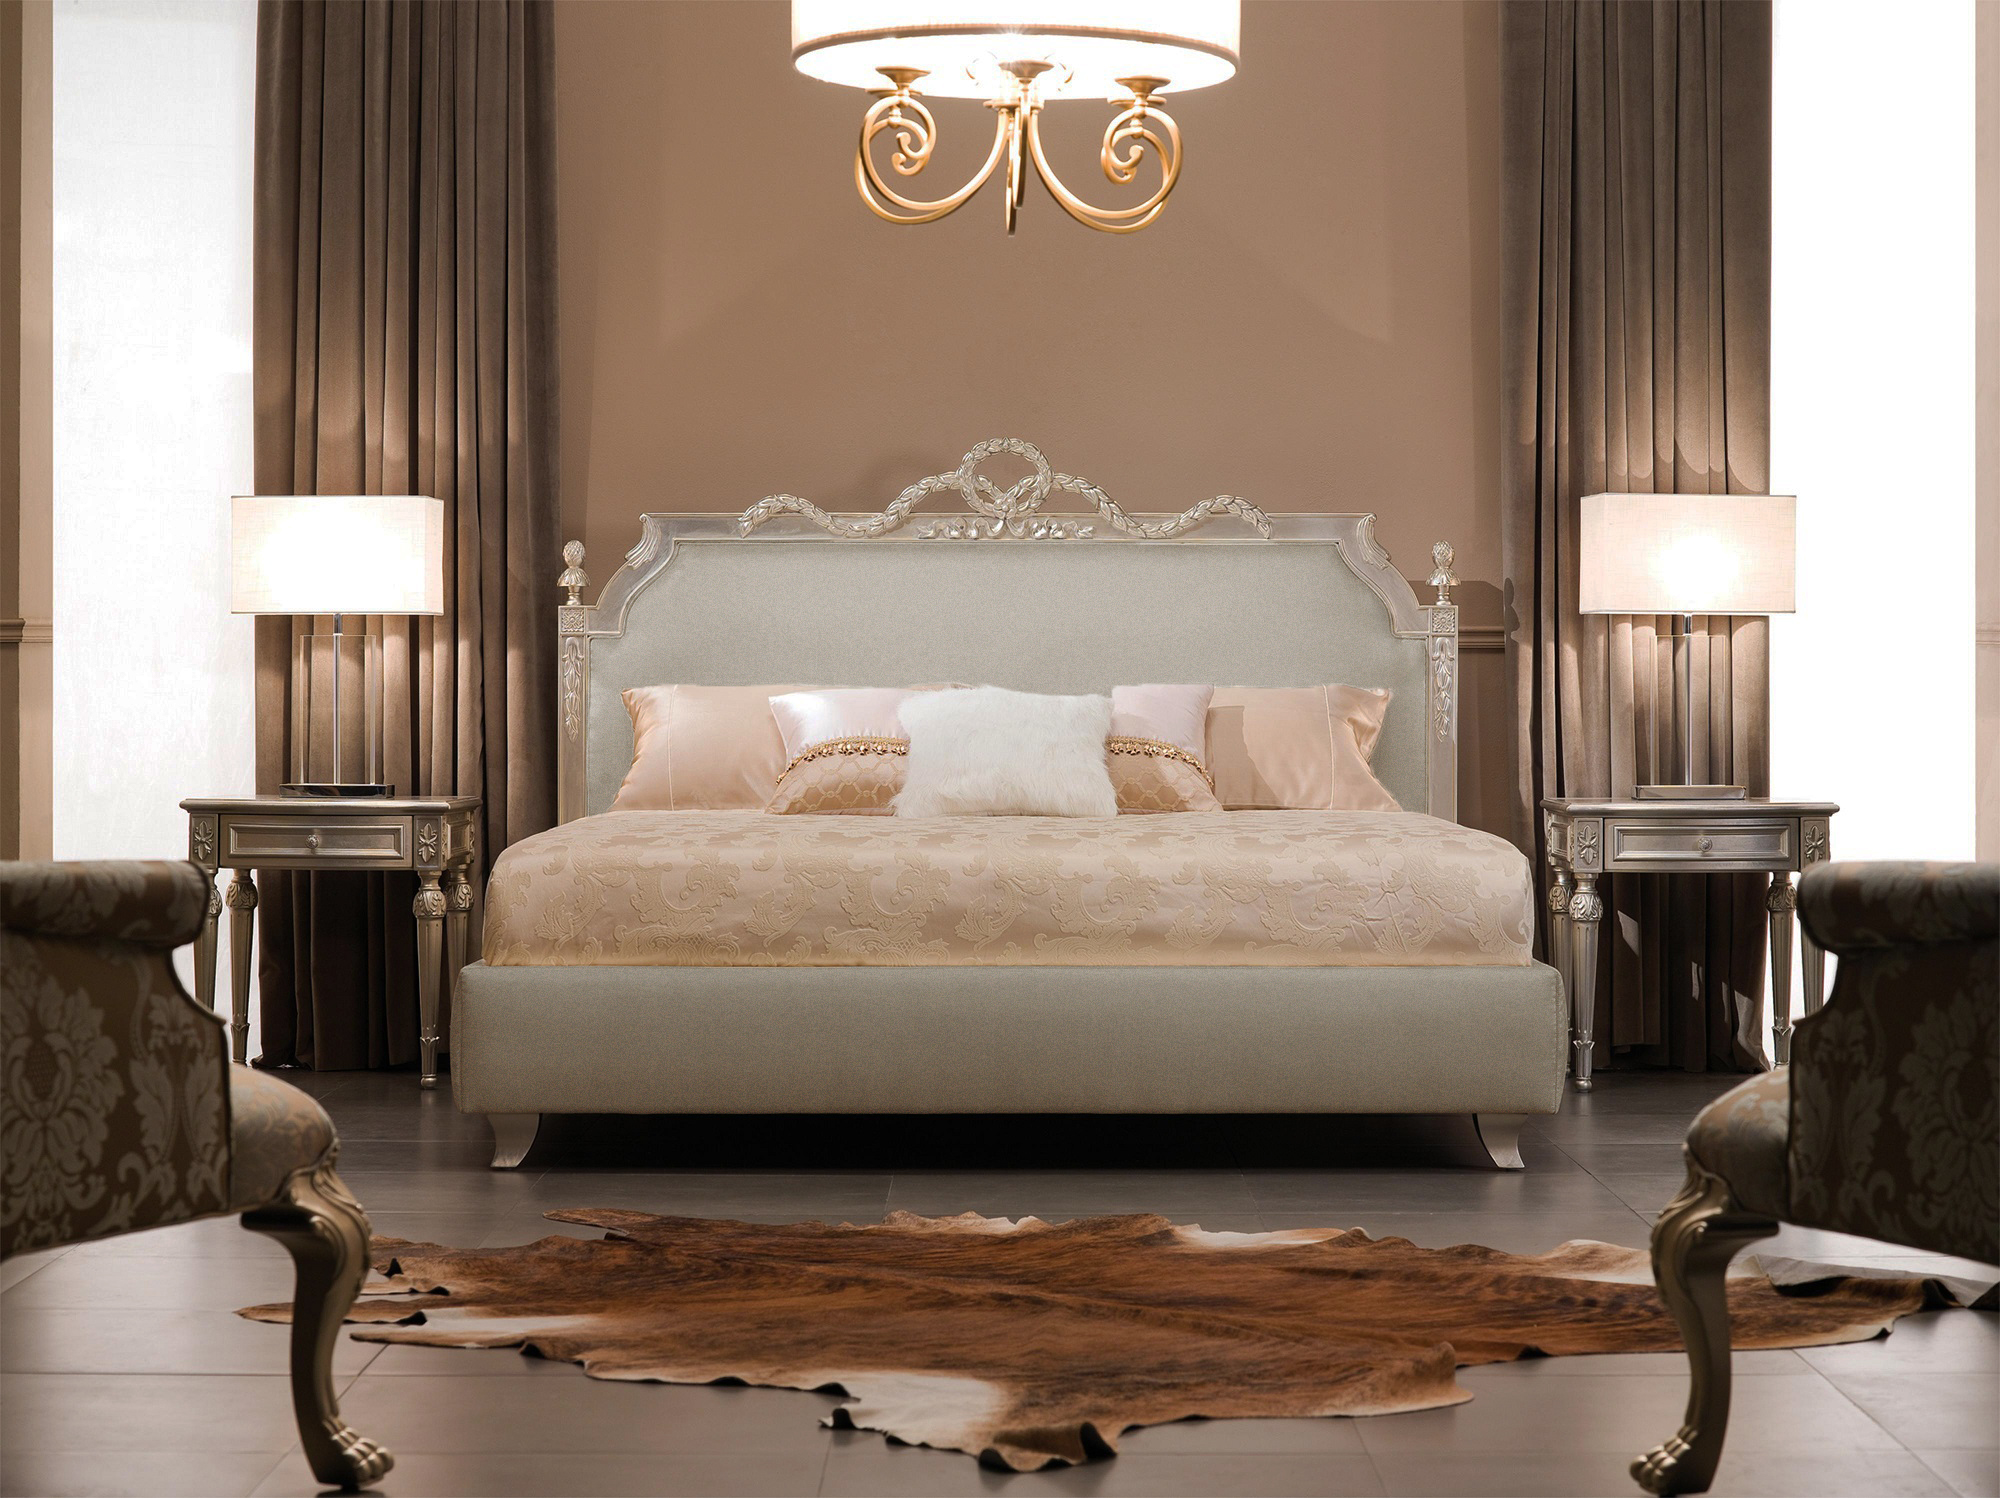 Chambre Baroque Luxury Bed Baroque Bed Luxury Bedroom Set Ambassador